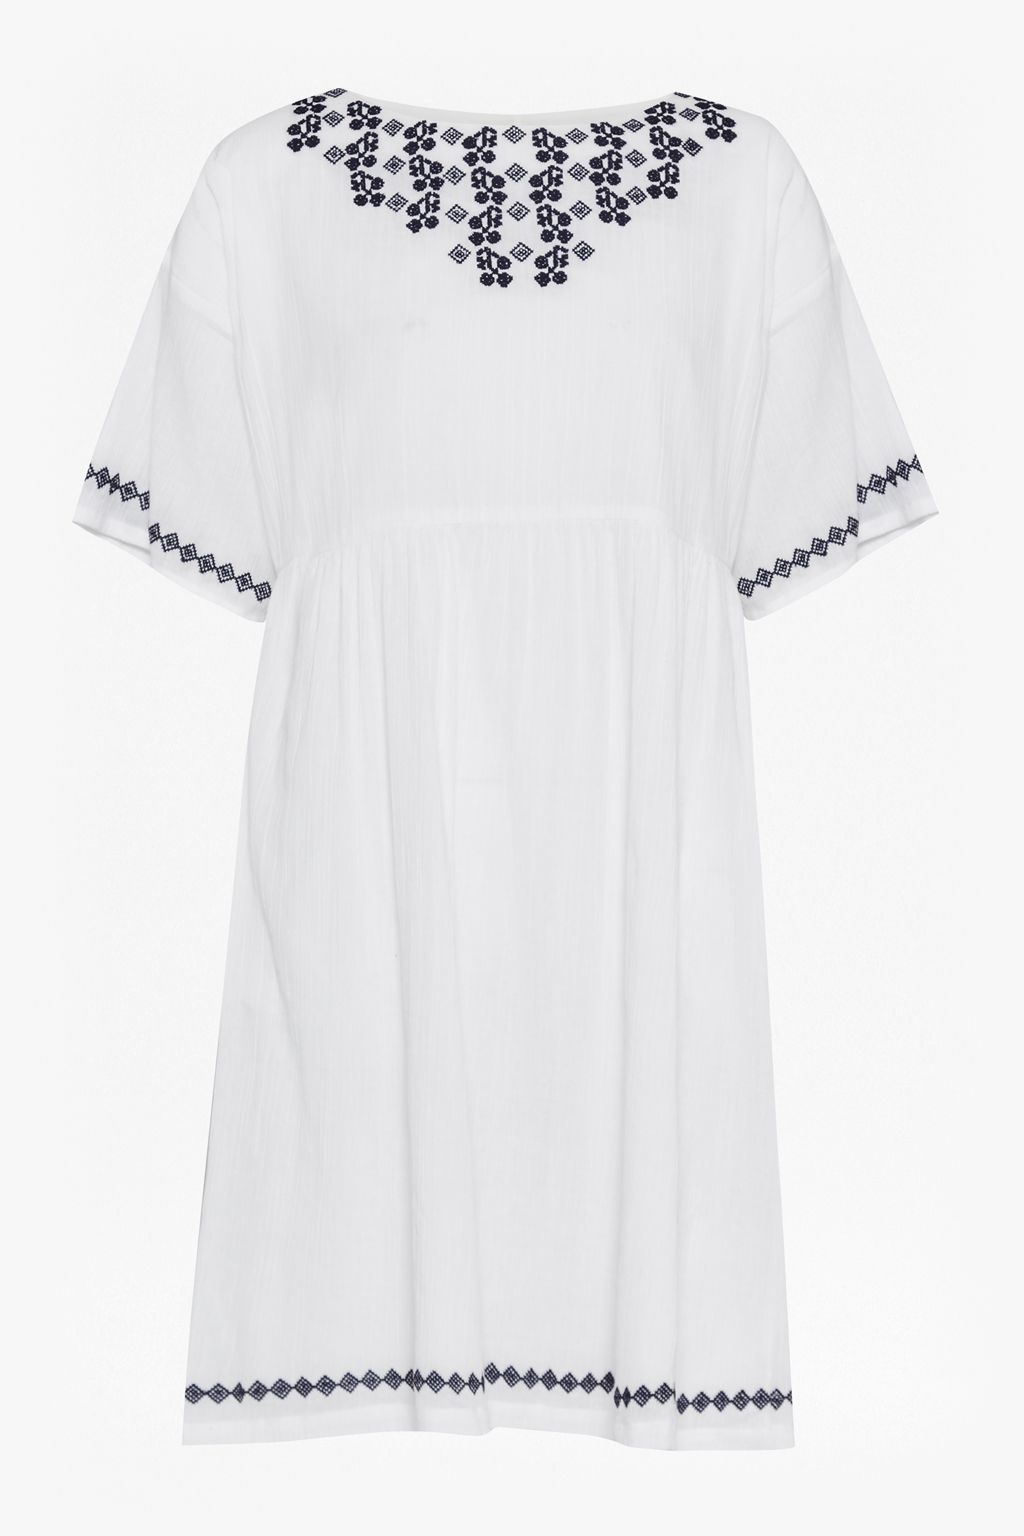 Womens Seacrest Stitch Embroidered Dress Great Plains 2018 Cheap Online Uxk8ciYe